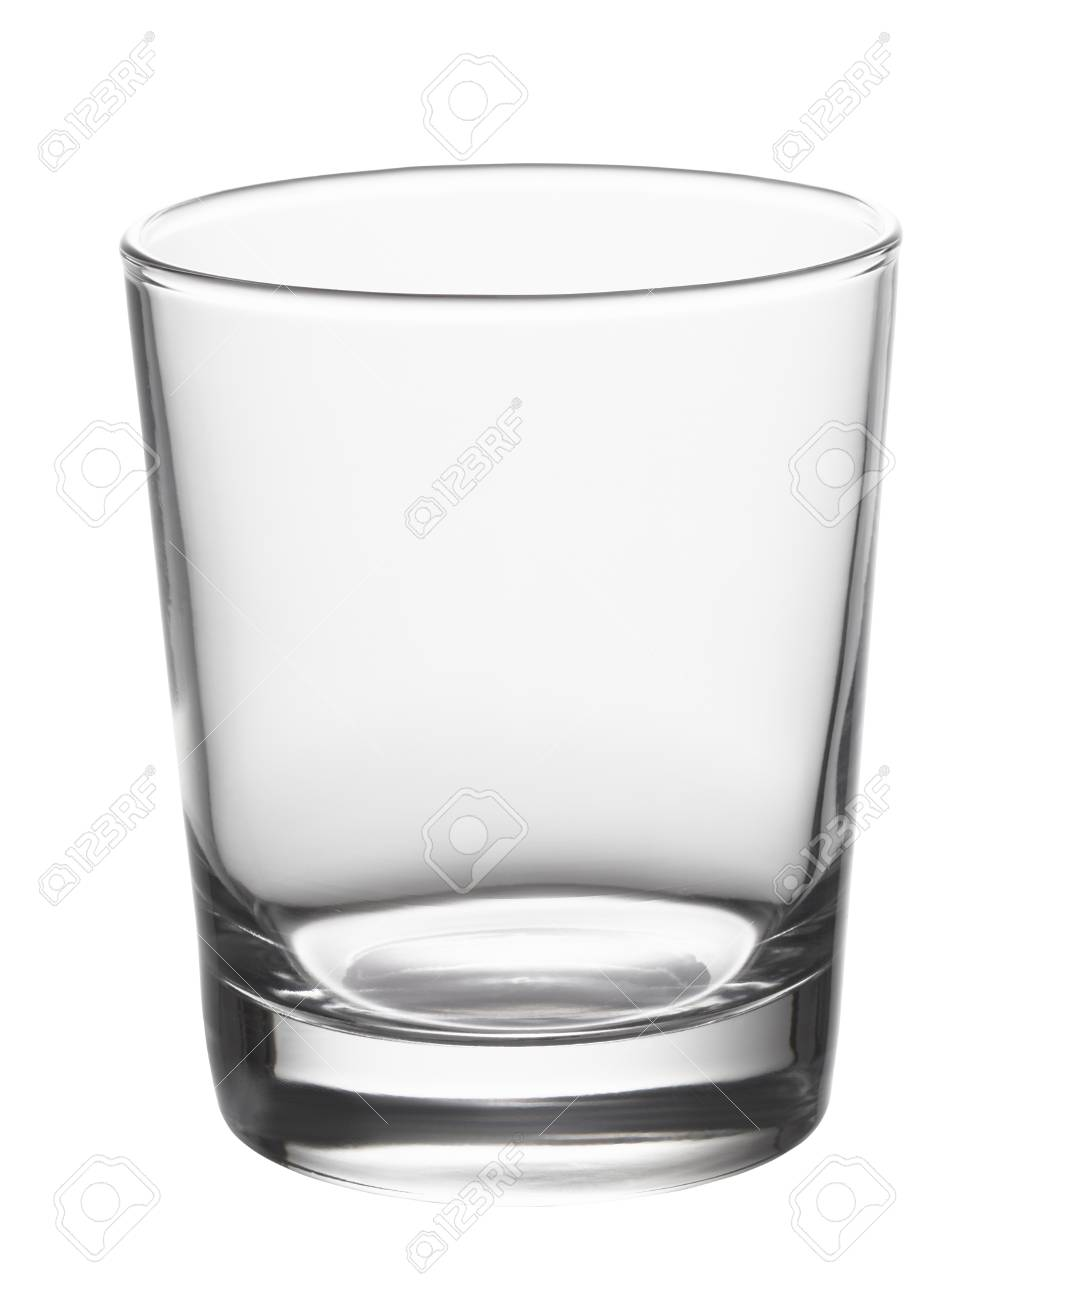 Empty glass isolated on white background - 58429620